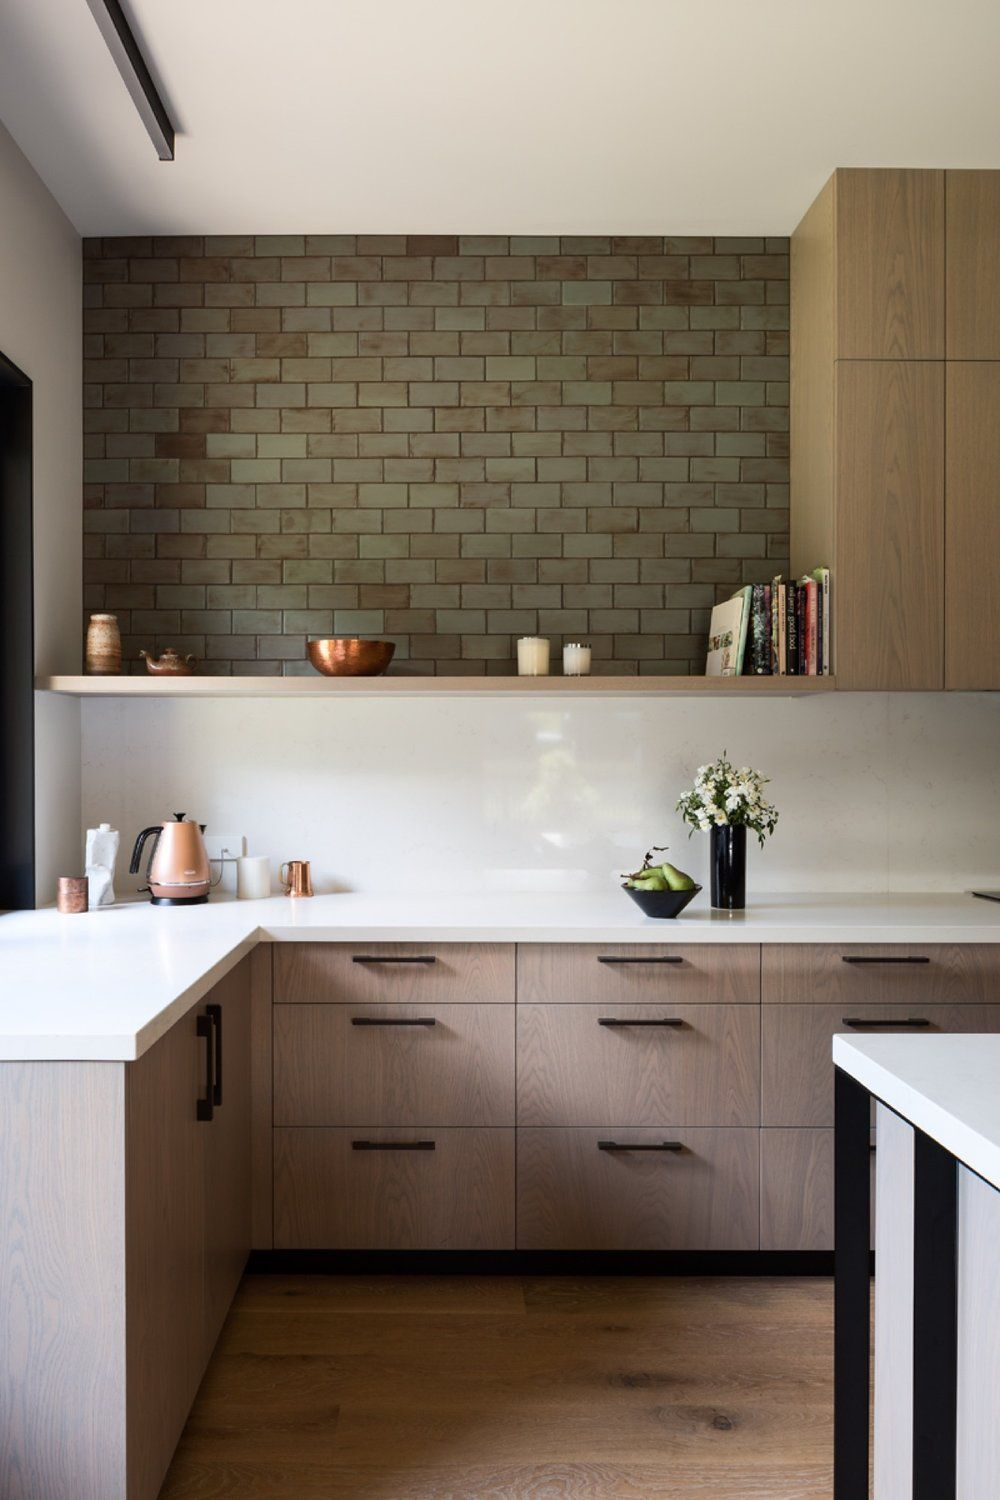 Make Your Kitchen Feel Larger with This One Trick Natural kitchen